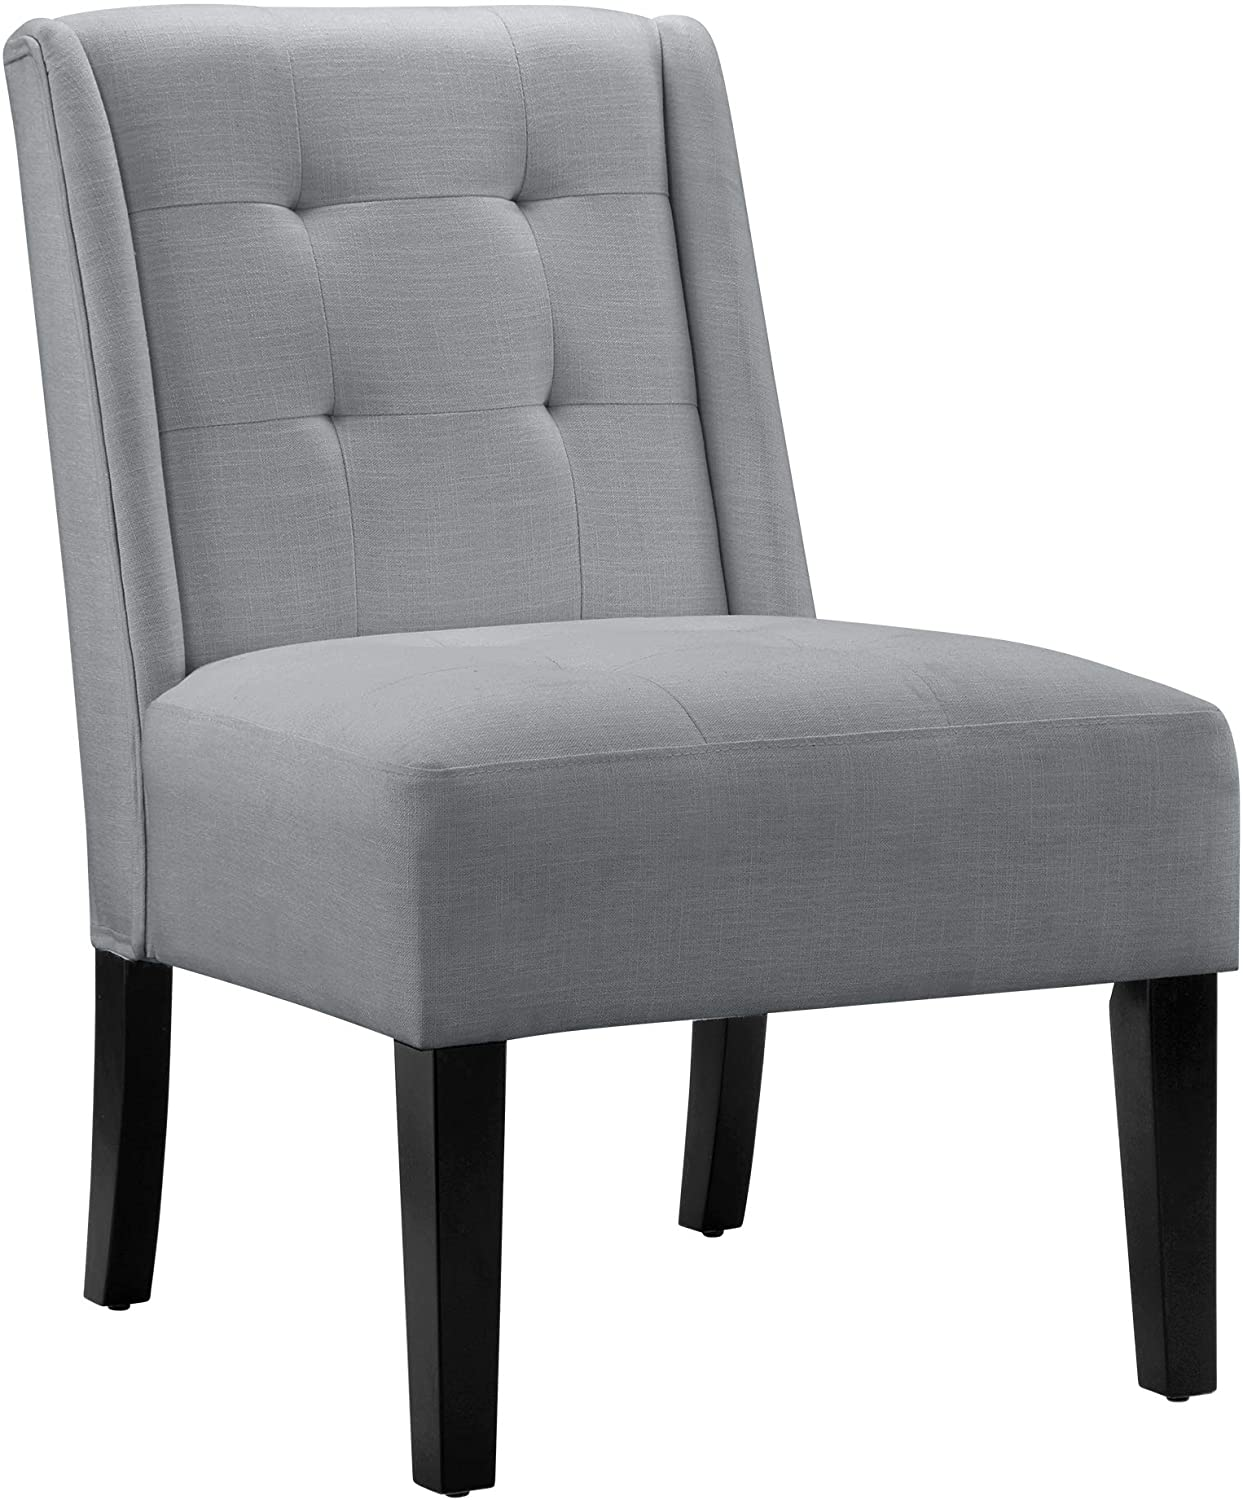 AmazonBasics tufted accent chair with wood legs, Grey